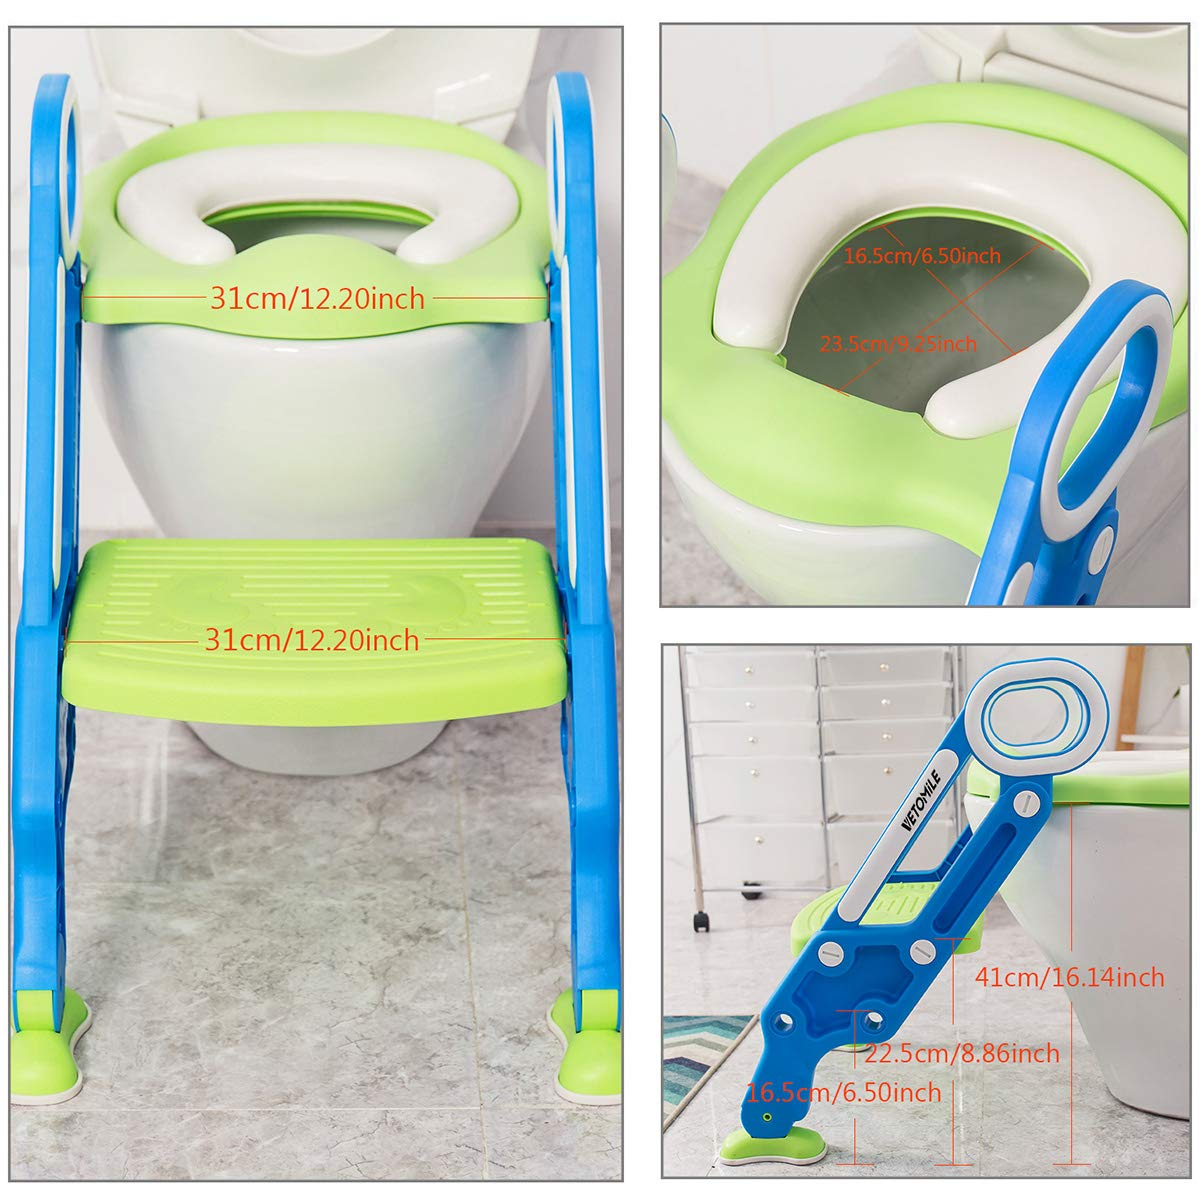 VETOMILE Baby Potty Toilet Trainer Seat for Children Kids Toddles with Adjustable Sturdy Non-Slip Step Stool Ladder and 2 PU Leather Replaceable Soft Padding Suitable for O V U Shaped-Toilets by VETOMILE (Image #2)